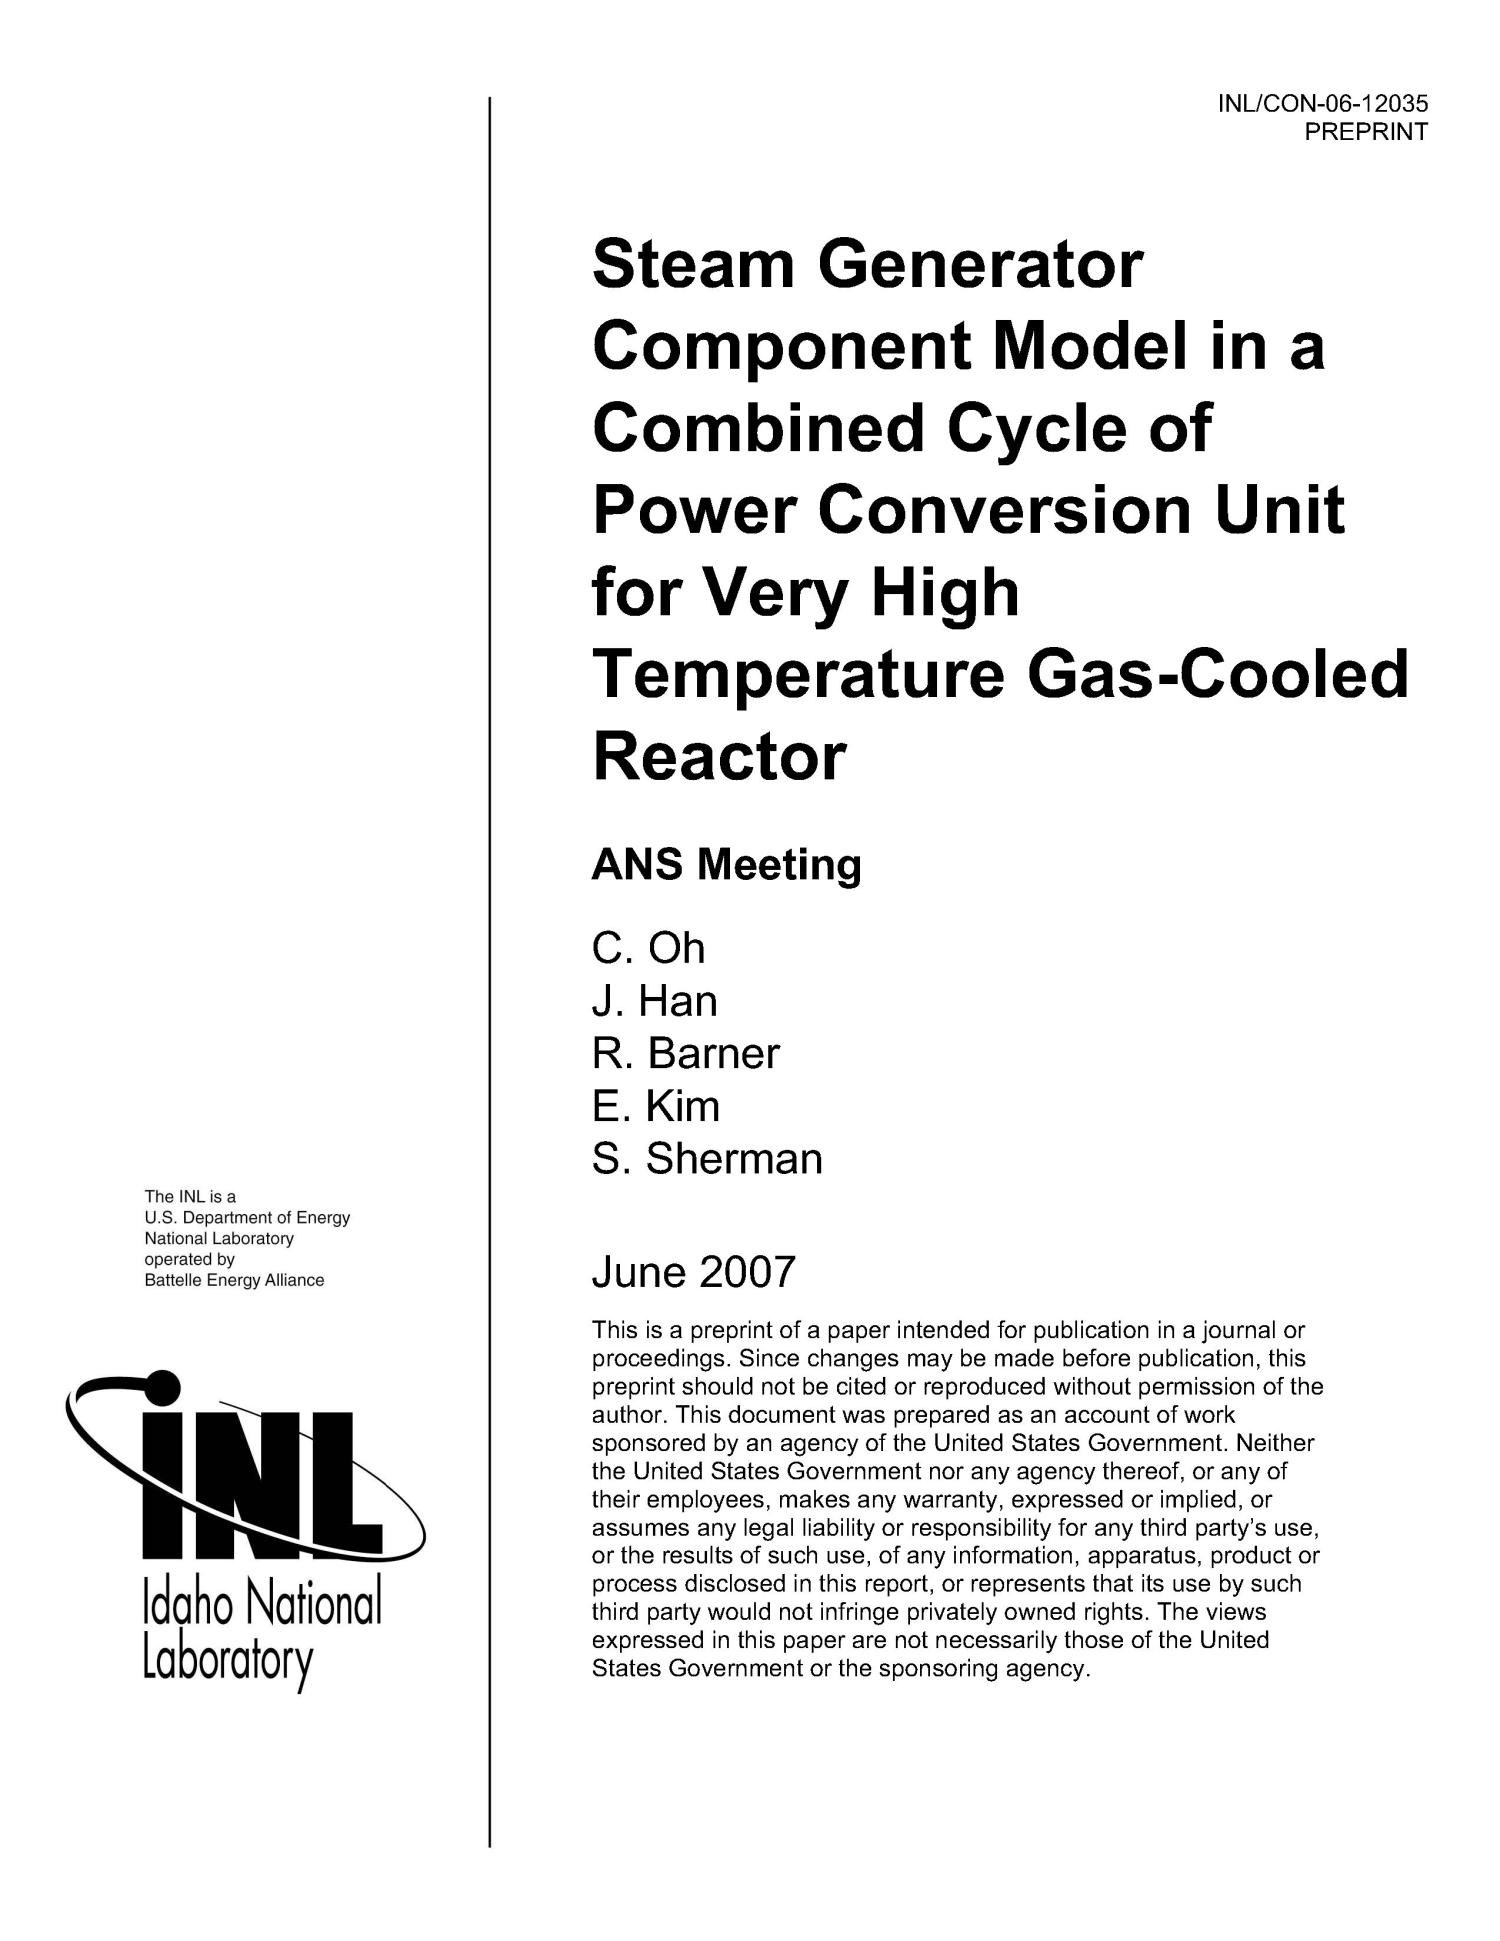 Steam Generator ponent Model in a bined Cycle of Power